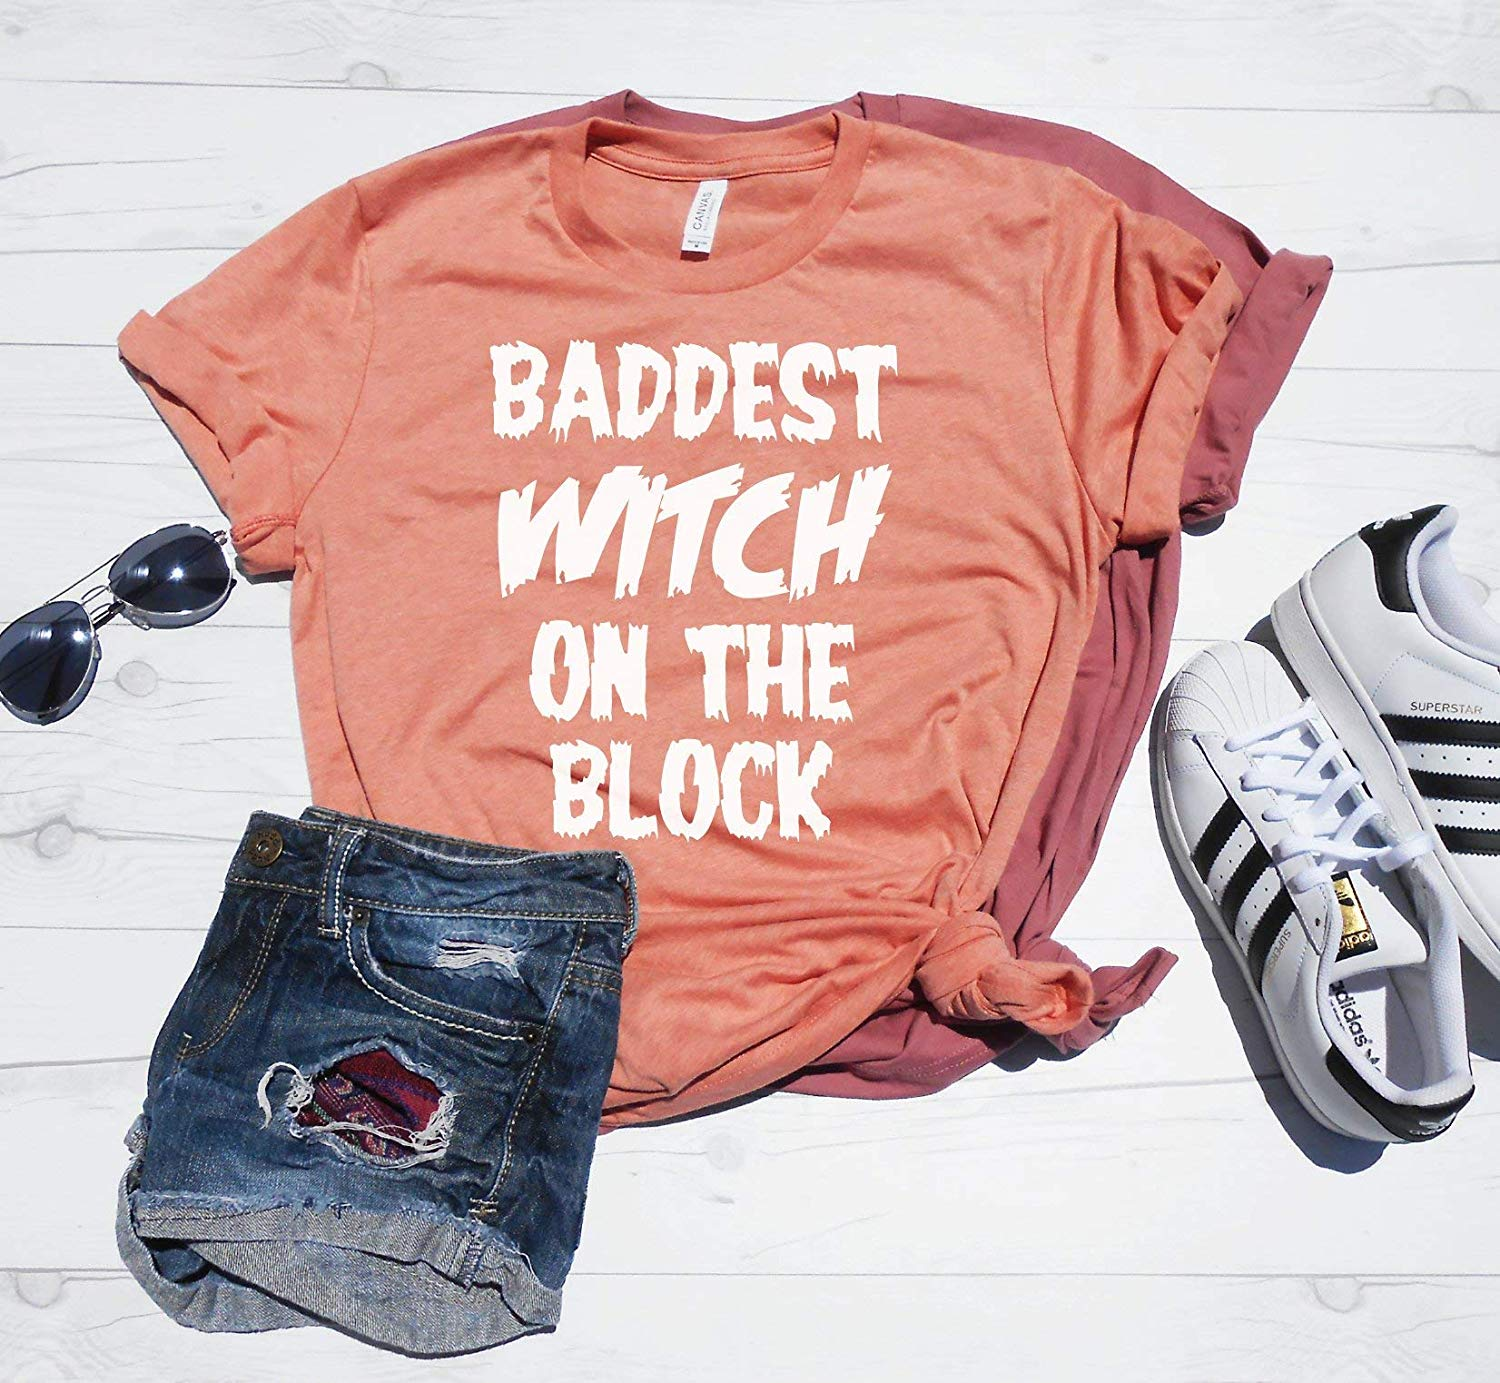 Baddest Witch on the Block T-Shirt, Cute Halloween Shirt, Halloween Shirt, Halloween tee, Unisex Fit, Mom Halloween Shirt, Witch Shirt, Bad Witch